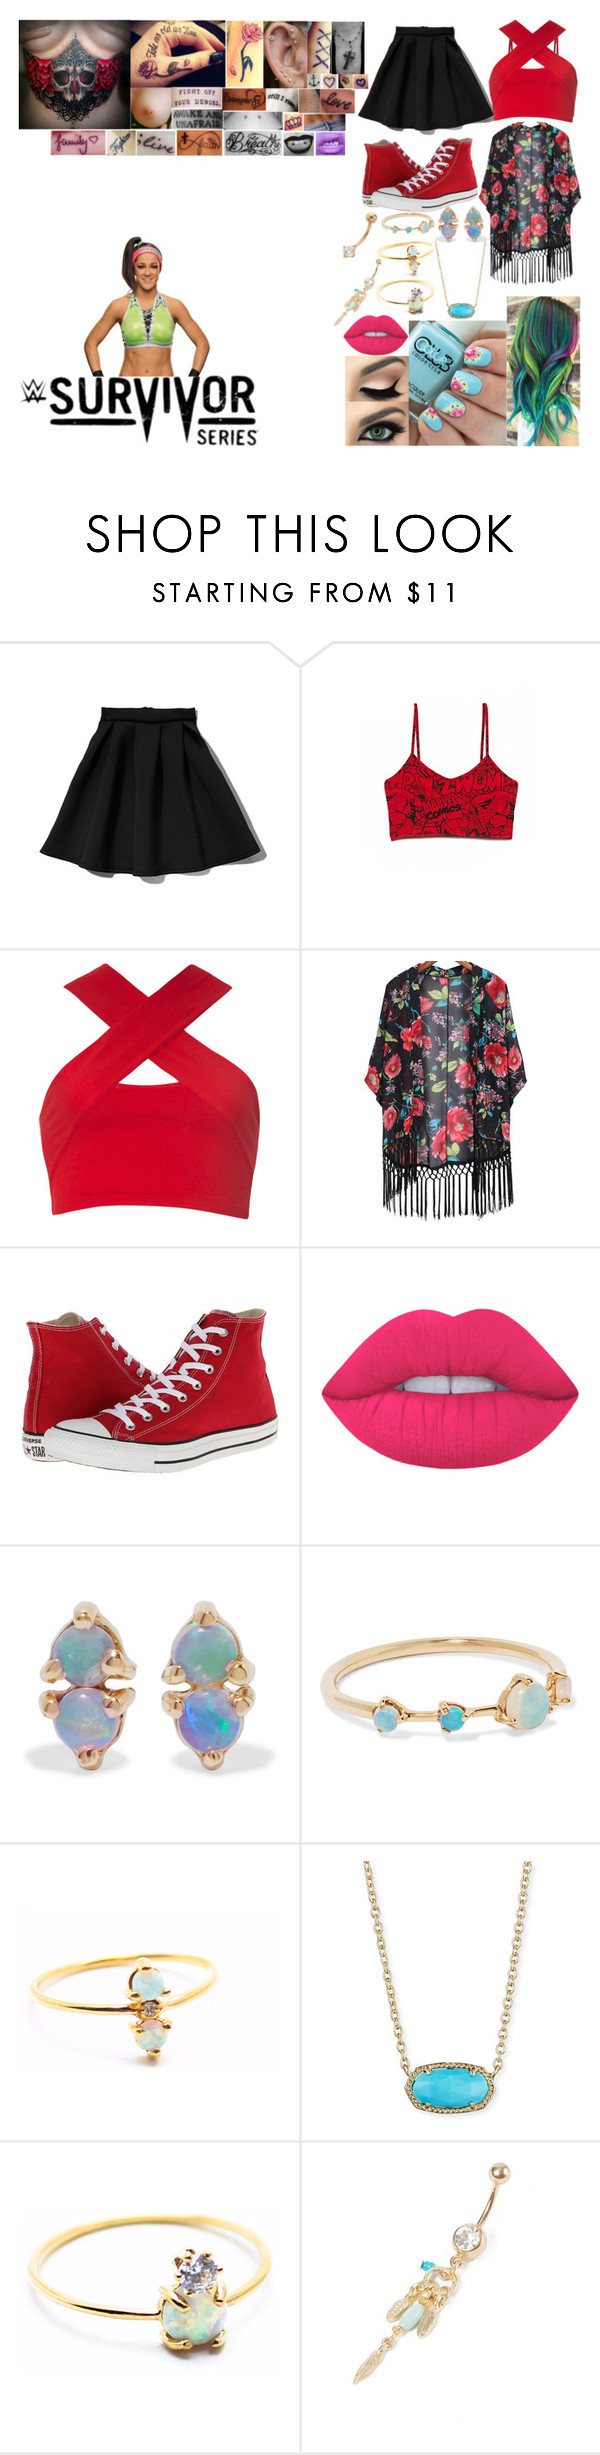 """Walking Bayley out to her match at Survivor Series"" by belabmilagres ❤ liked on Polyvore featuring WWE, Abercrombie & Fitch, Forever 21, Motel, Converse, Lime Crime, WWAKE, La Kaiser, Kendra Scott and Disney"